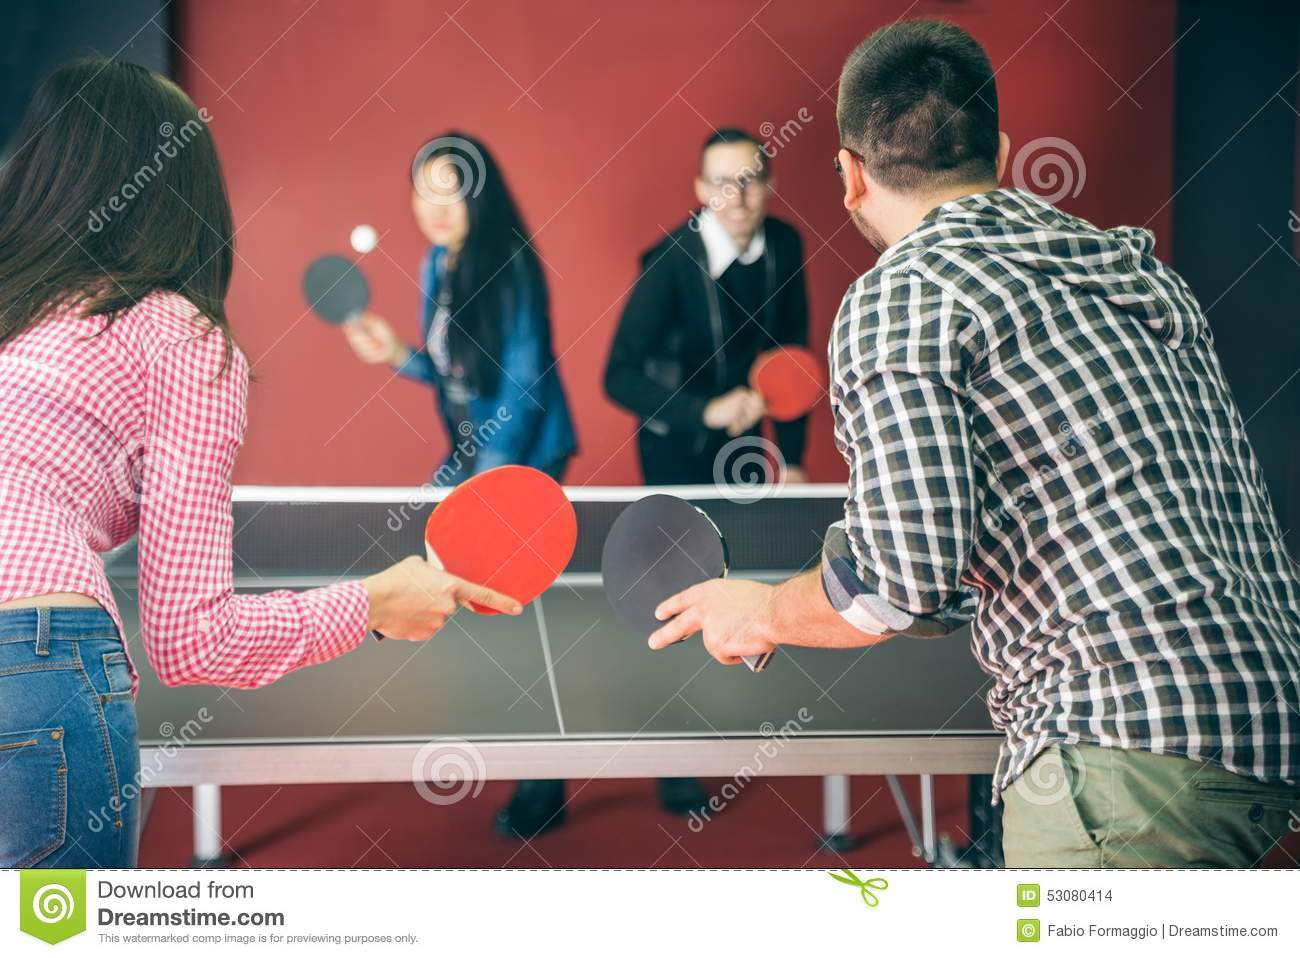 Couples jouant le ping-pong